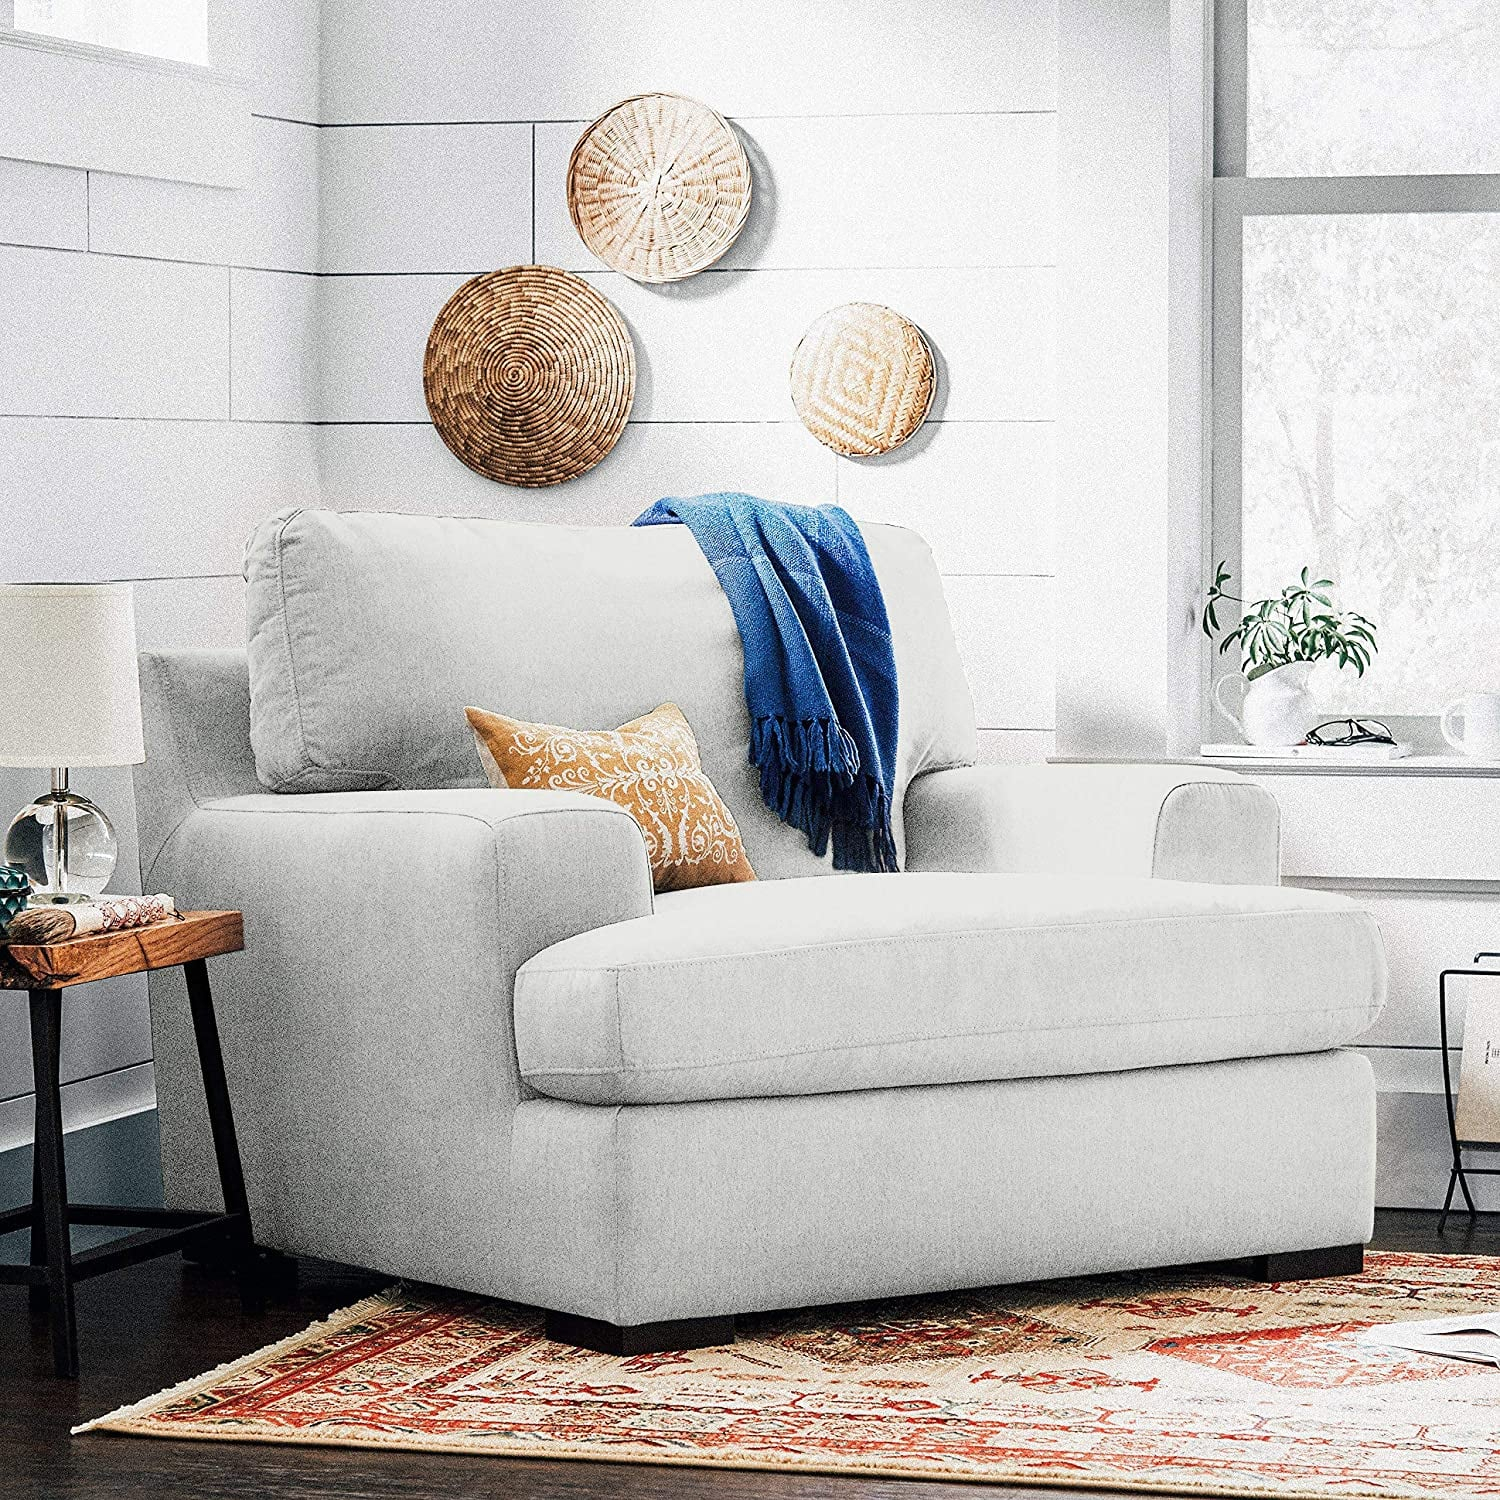 Best And Most Comfortable Lounge Chairs | Popsugar Home In Live It Cozy Armchairs (View 9 of 15)